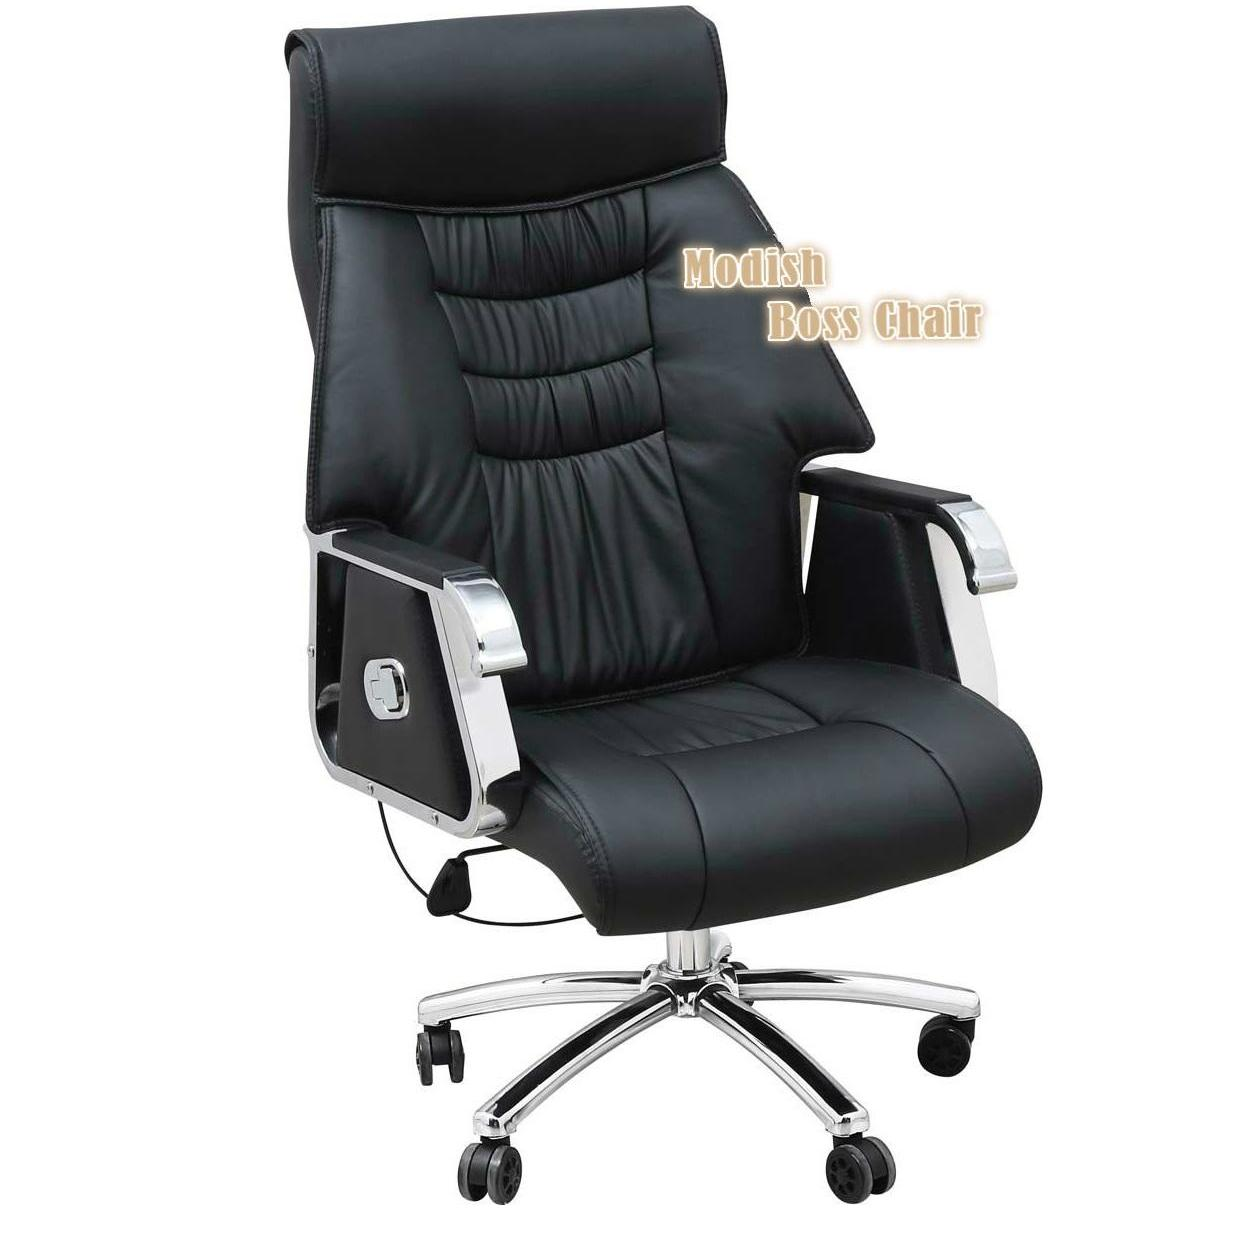 Recline-able High Back Director Chair / Boss Chair / Computer Chair / Office Chair - BC04 Singapore